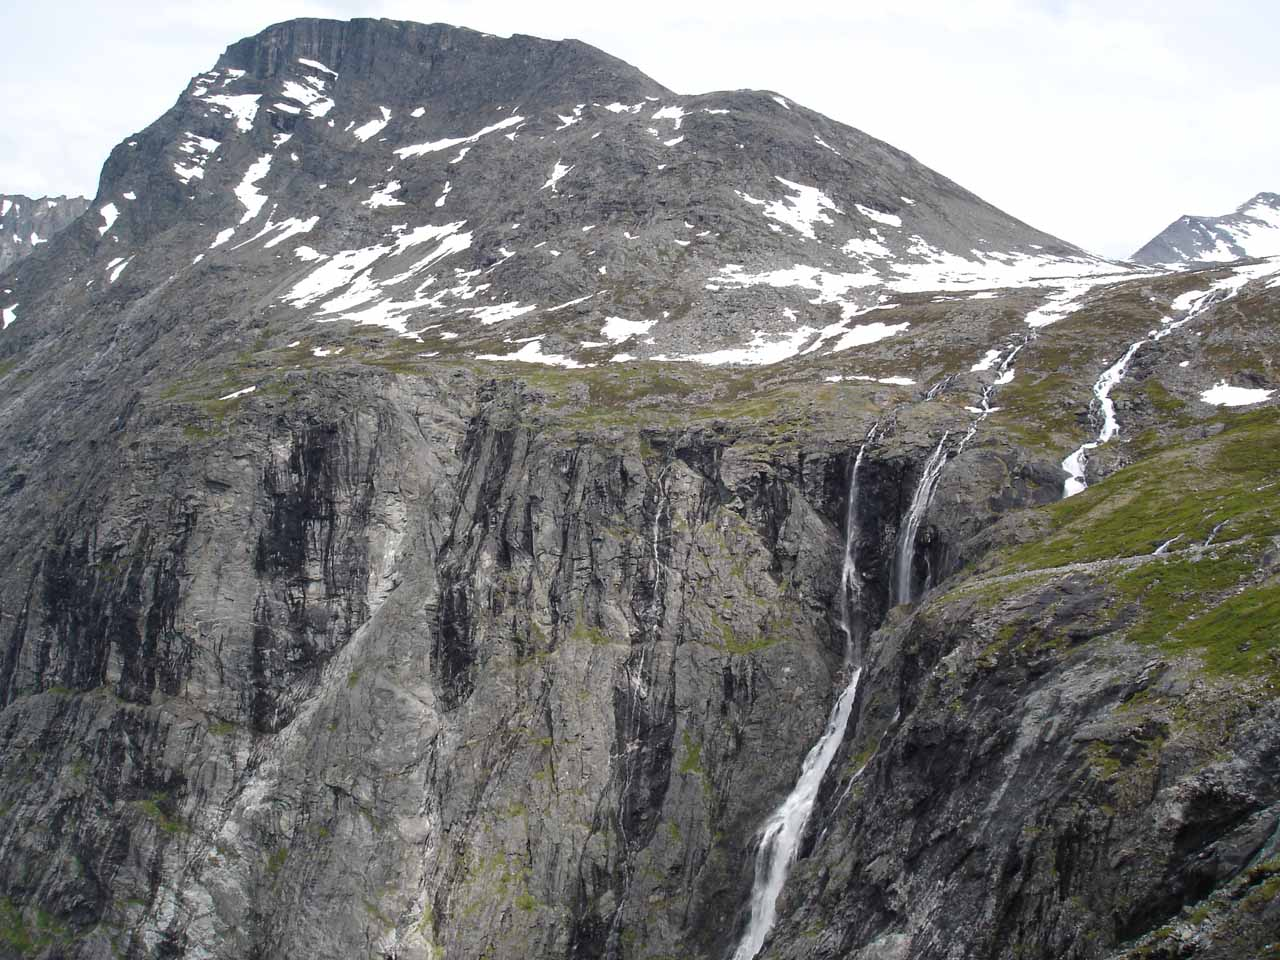 Looking towards Storgrovfjellet and the top of Tverrdalsfossen from the last stretch of Trollstigen